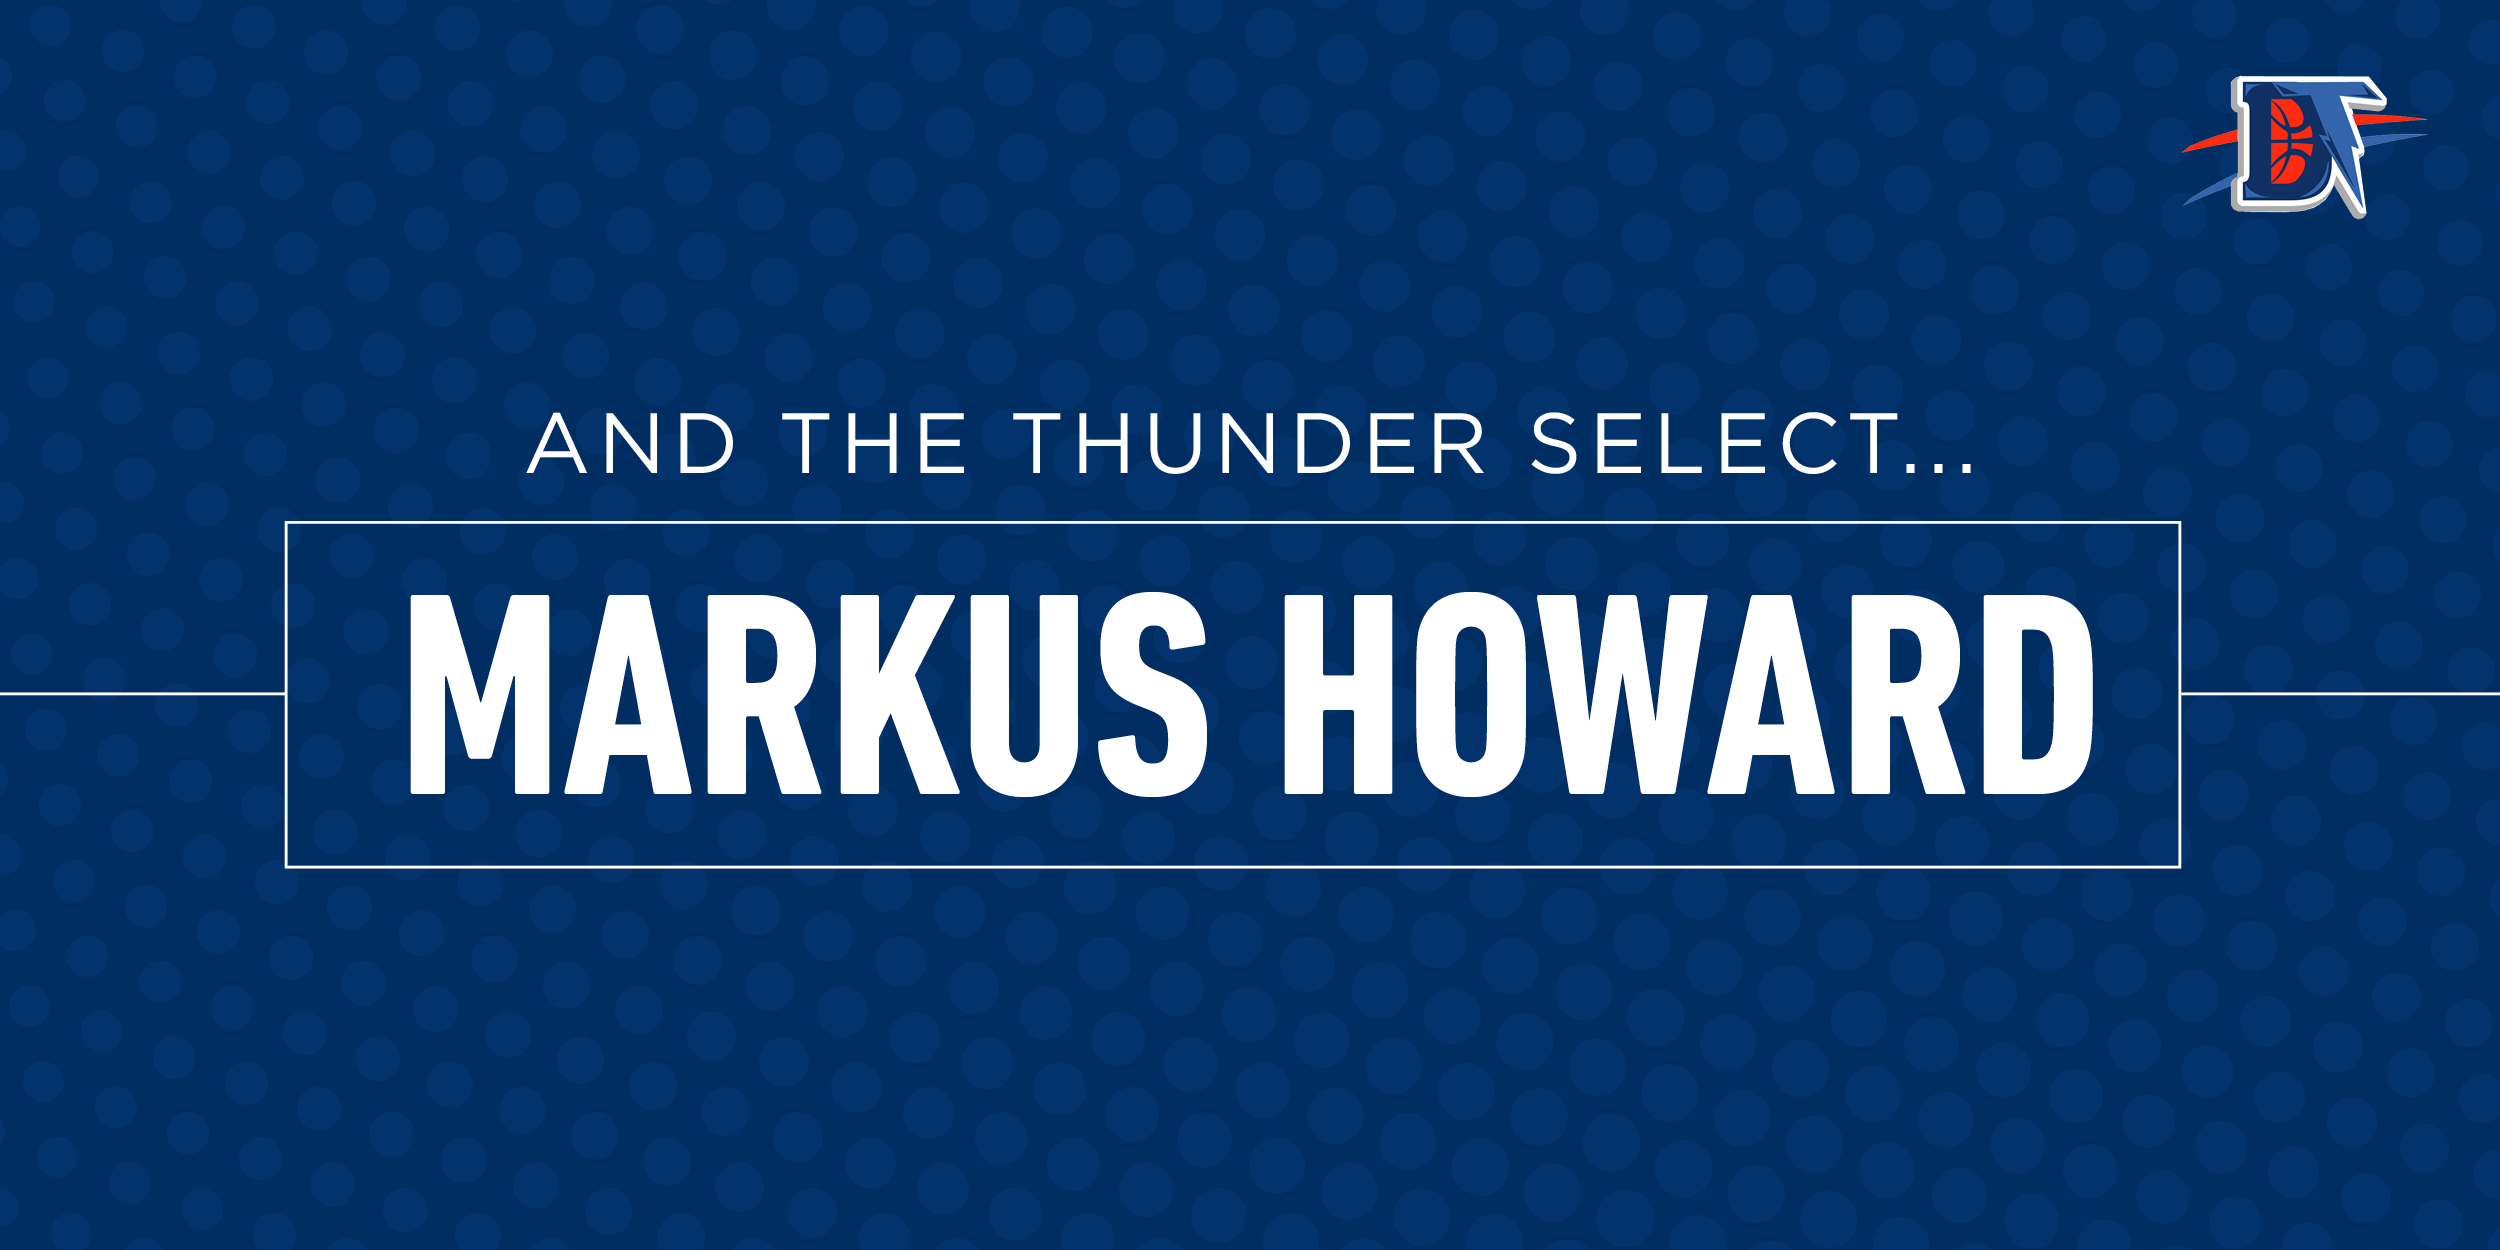 And the Thunder Select: Markus Howard